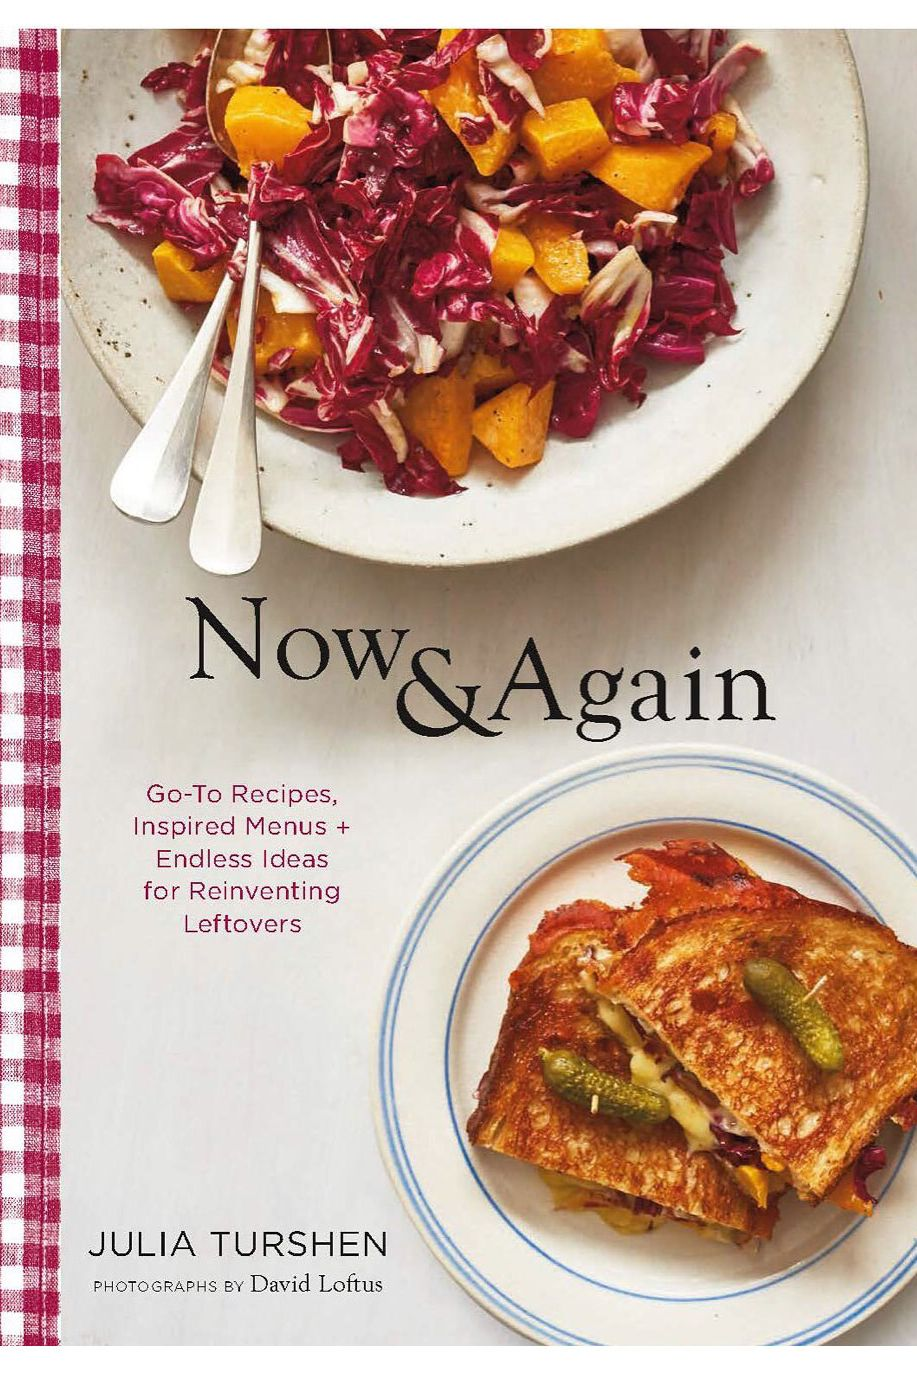 9. <em>Now & Again: Go-To Recipes, Inspired Menus + Endless Ideas for Reinventing Leftovers</em>, by Julia Turshen